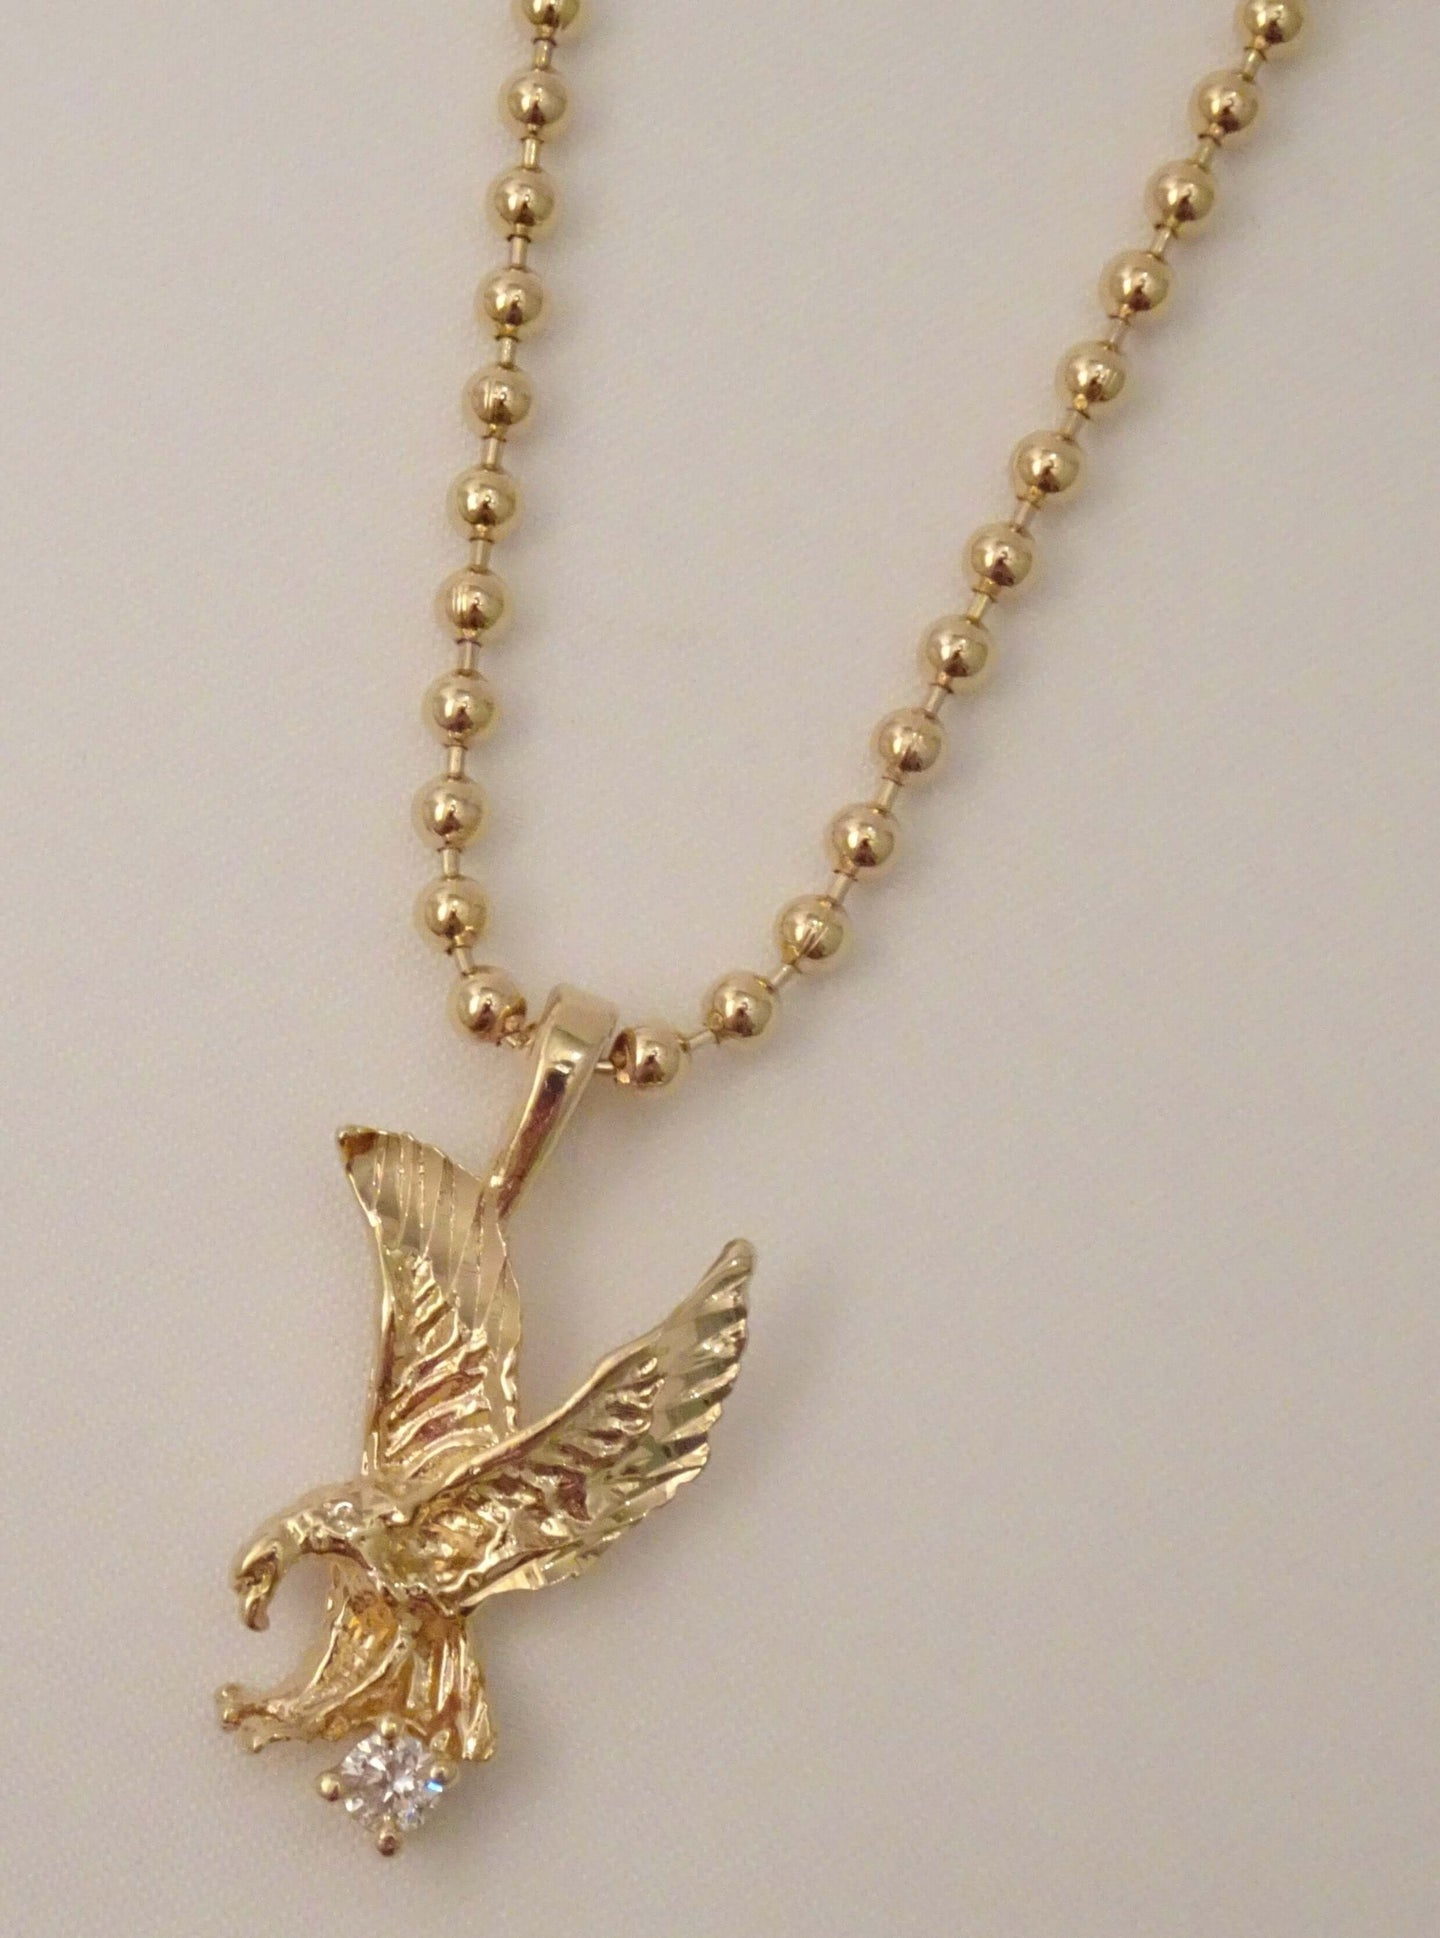 eagle necklace, gold eagle necklace, gold eagle pendant, eagle jewelry, american jewelry, biker jewelry